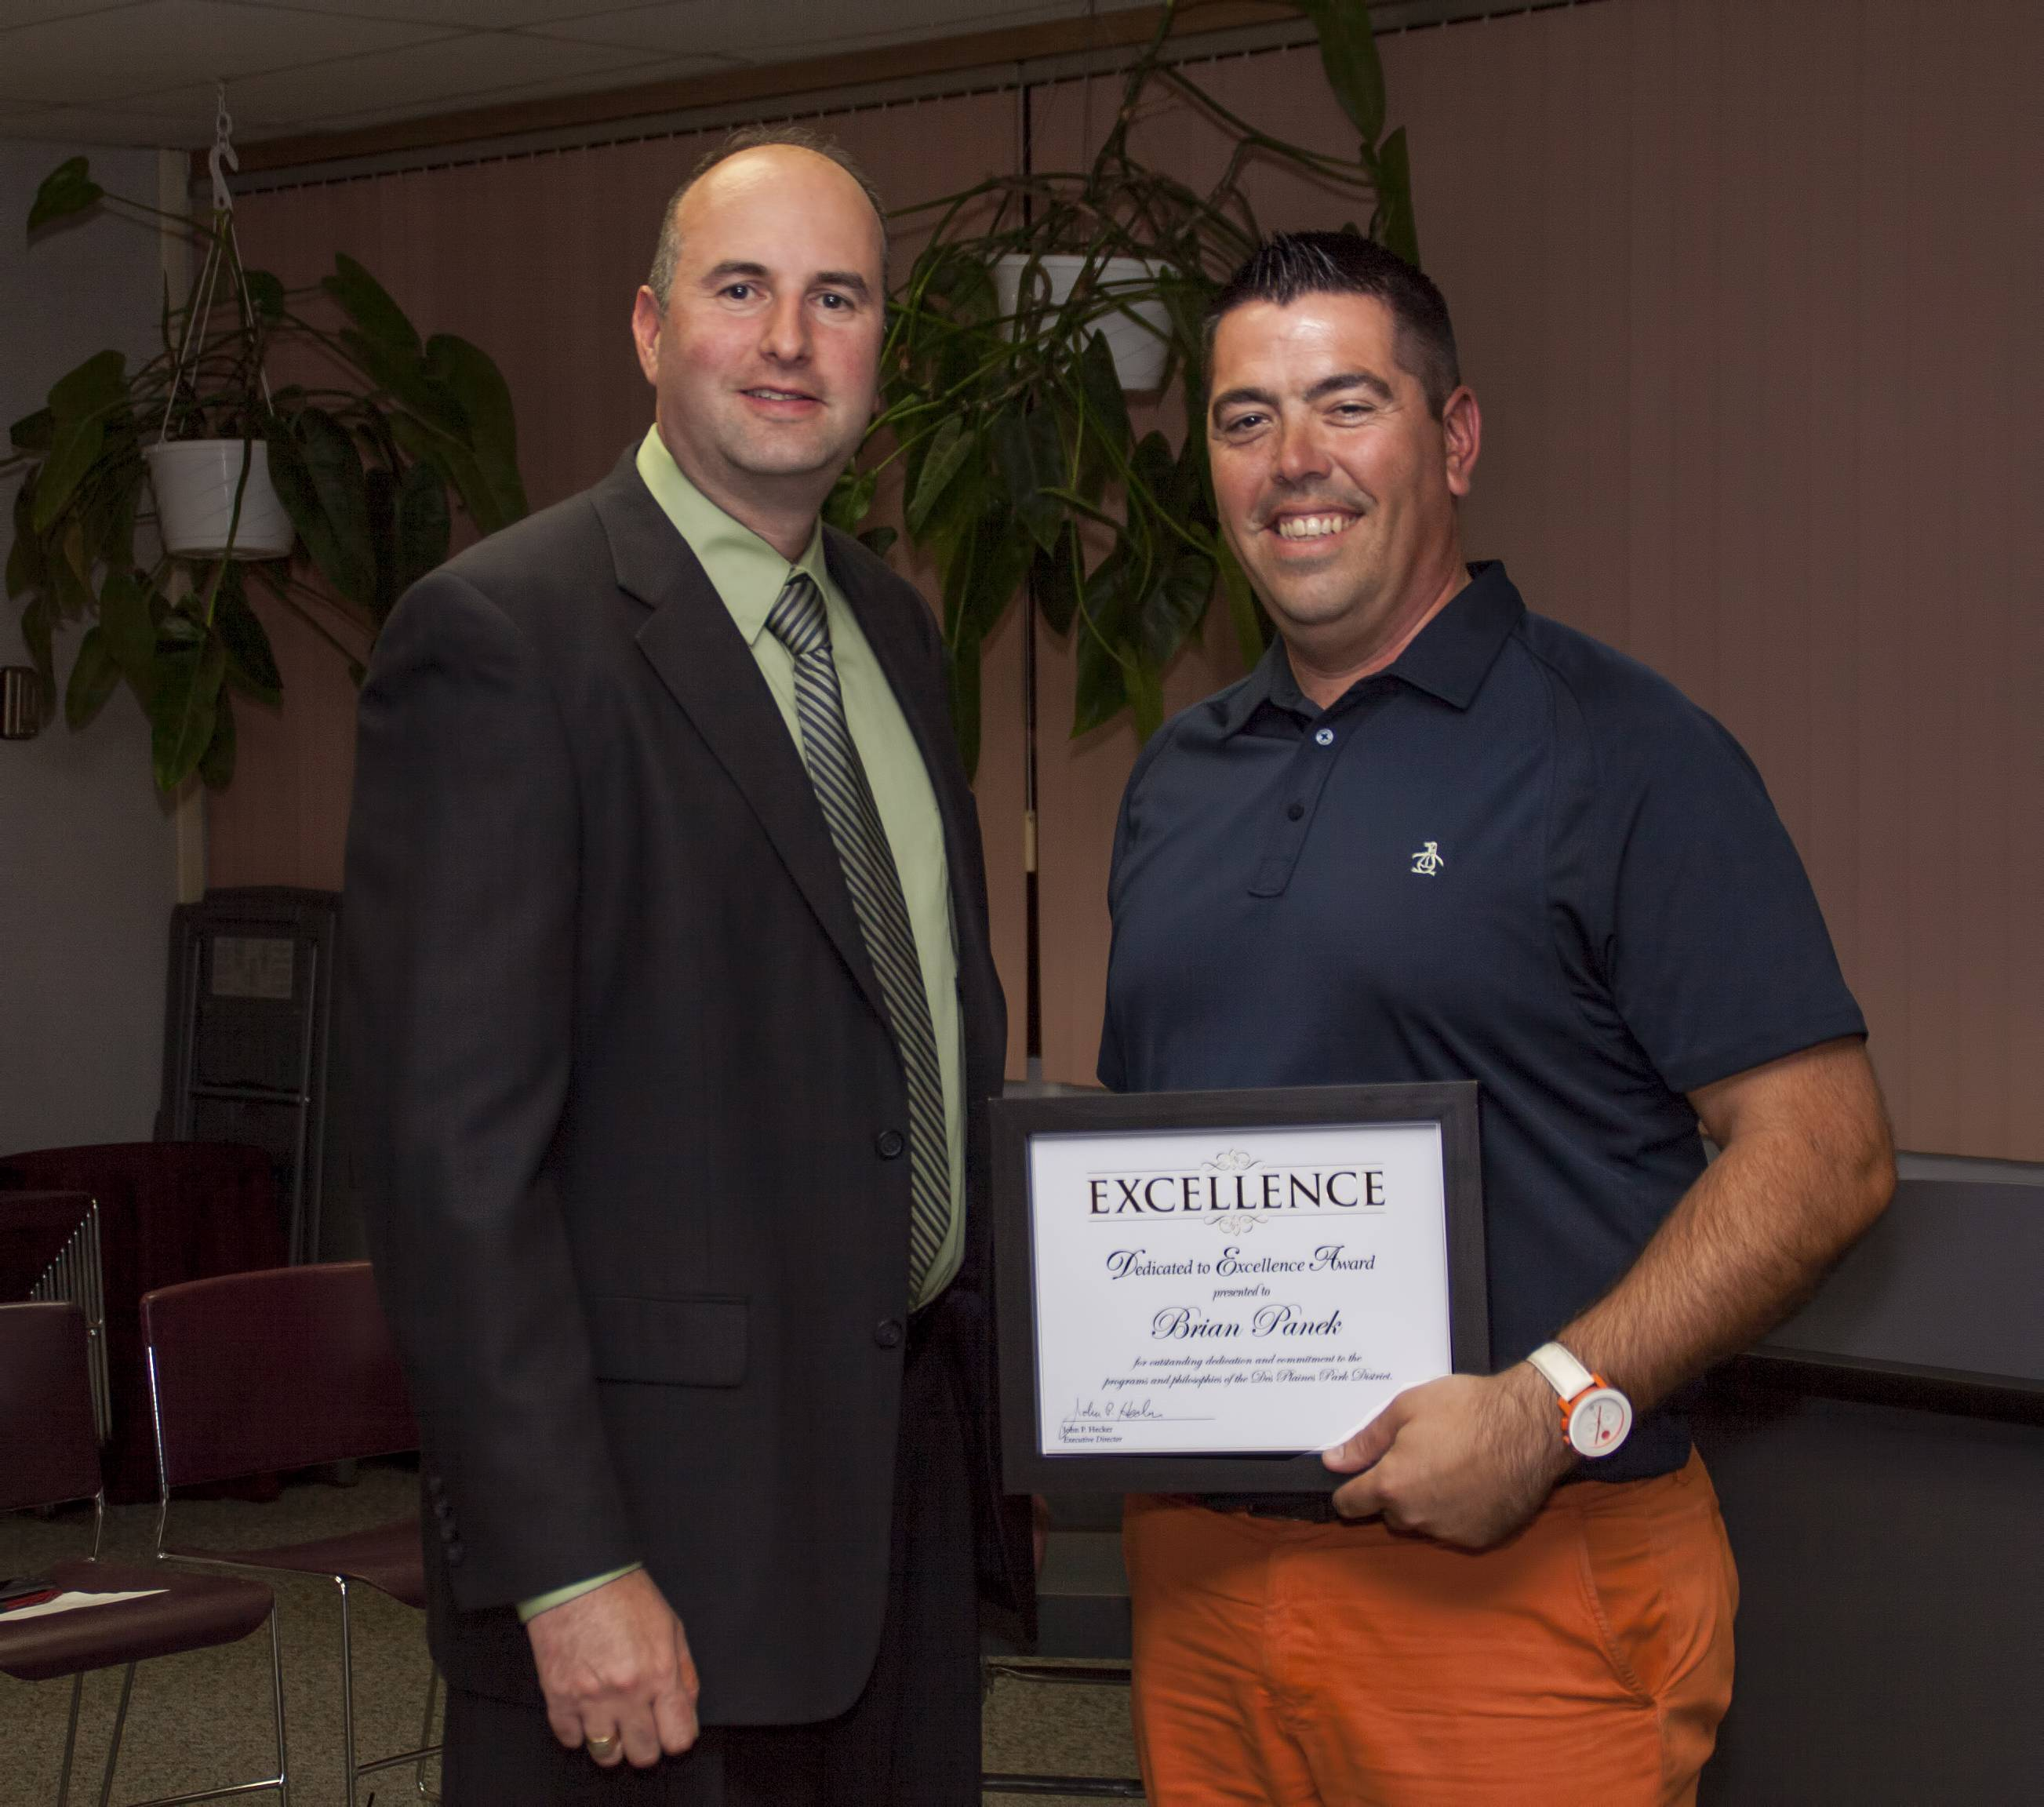 Brian Panek (right) receives his Dedicated to Excellence Award from Don Miletic at the Park Board Meeting on September 17.